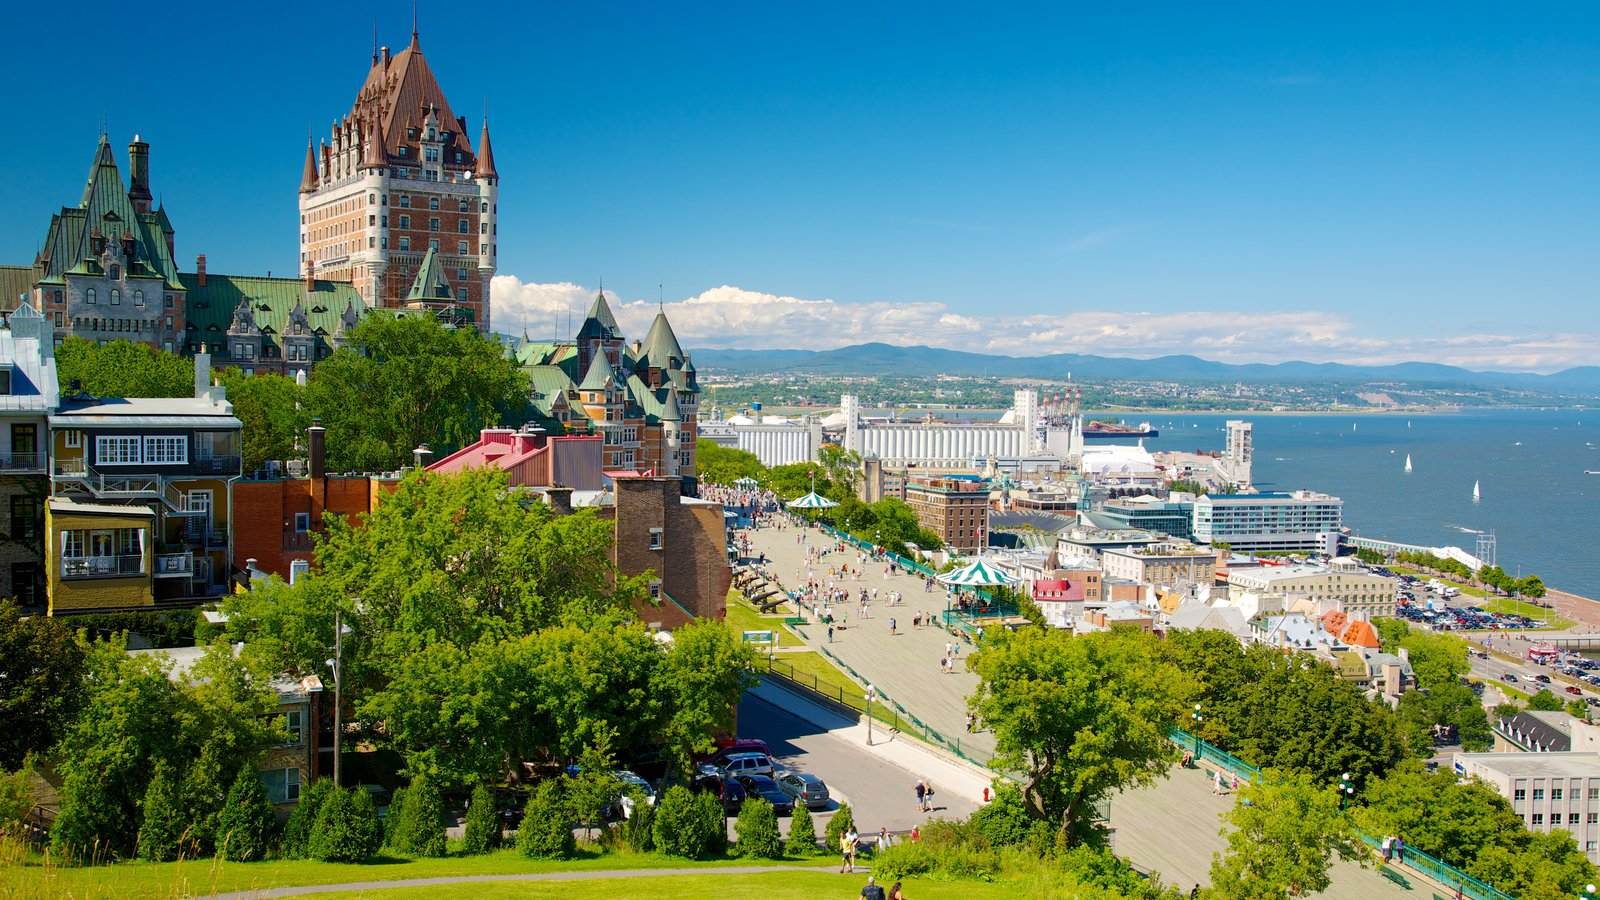 Parks Canada\'s Dufferin Terrace which includes landscape views, a castle and a city